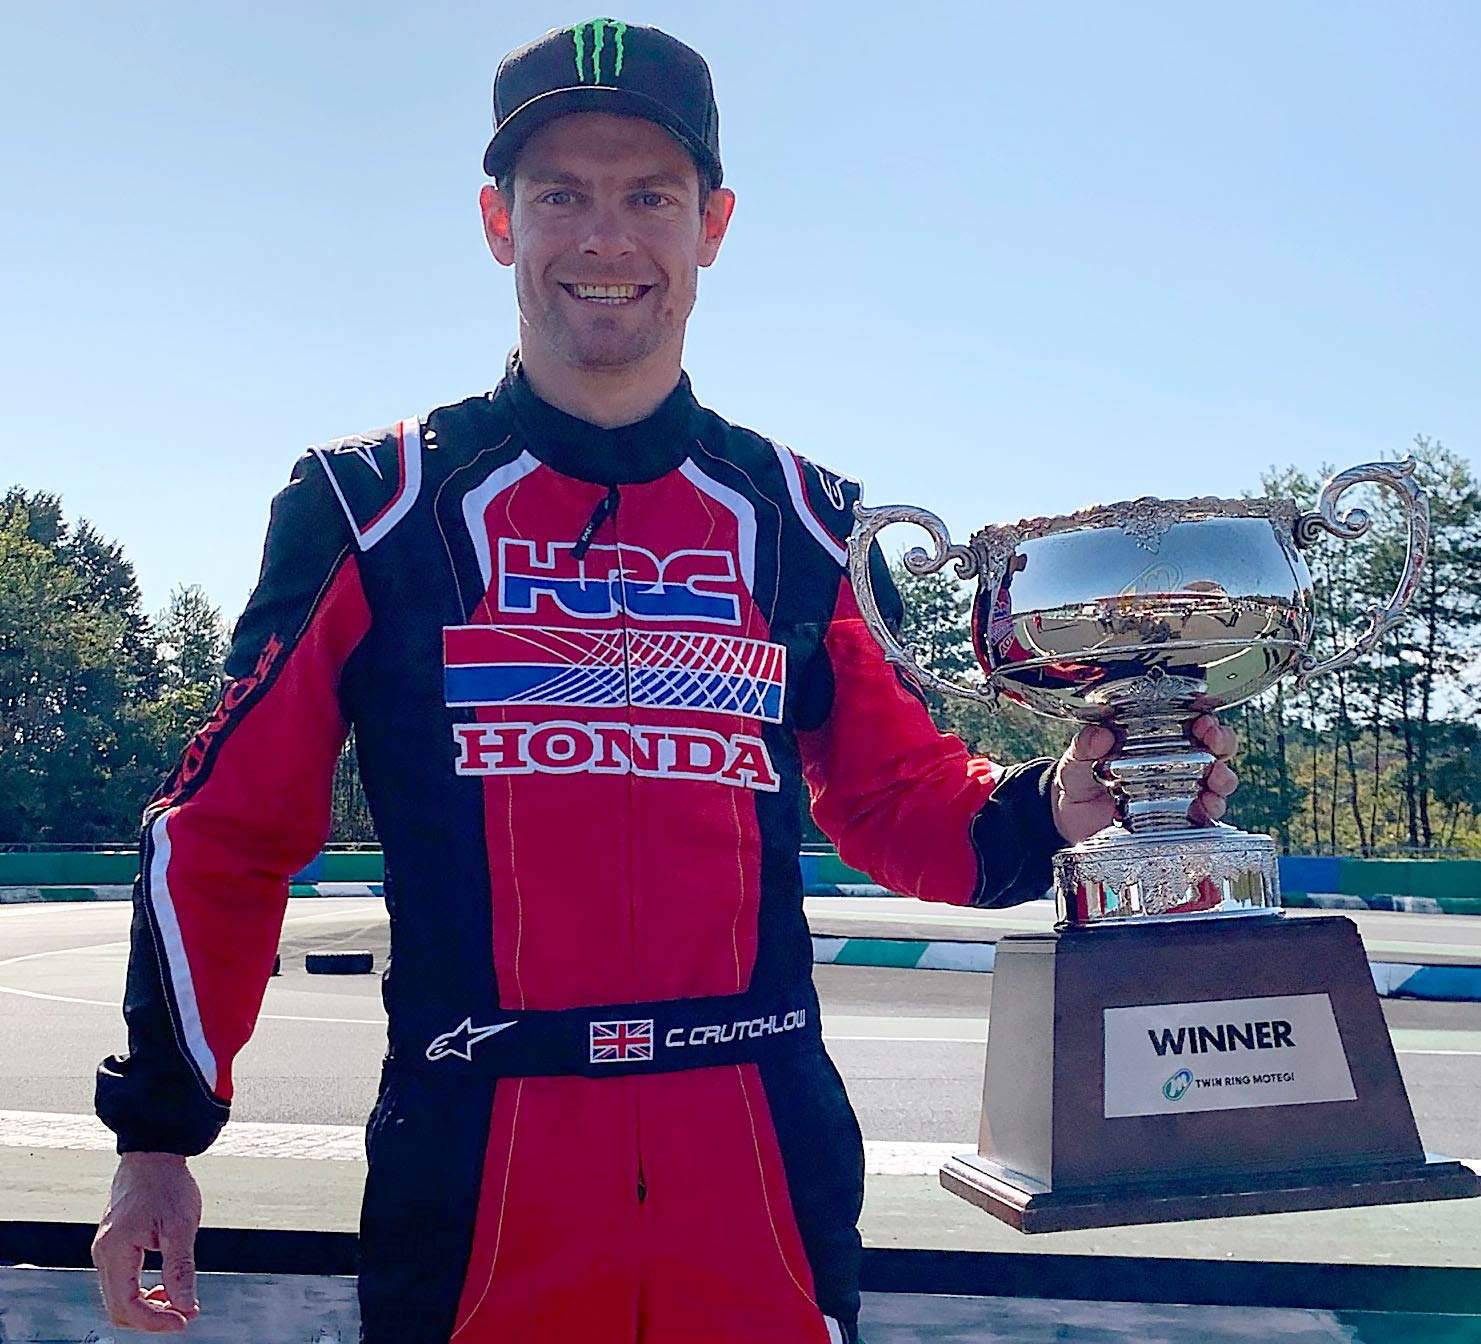 Honda Thanks Day Karts Crutchlow